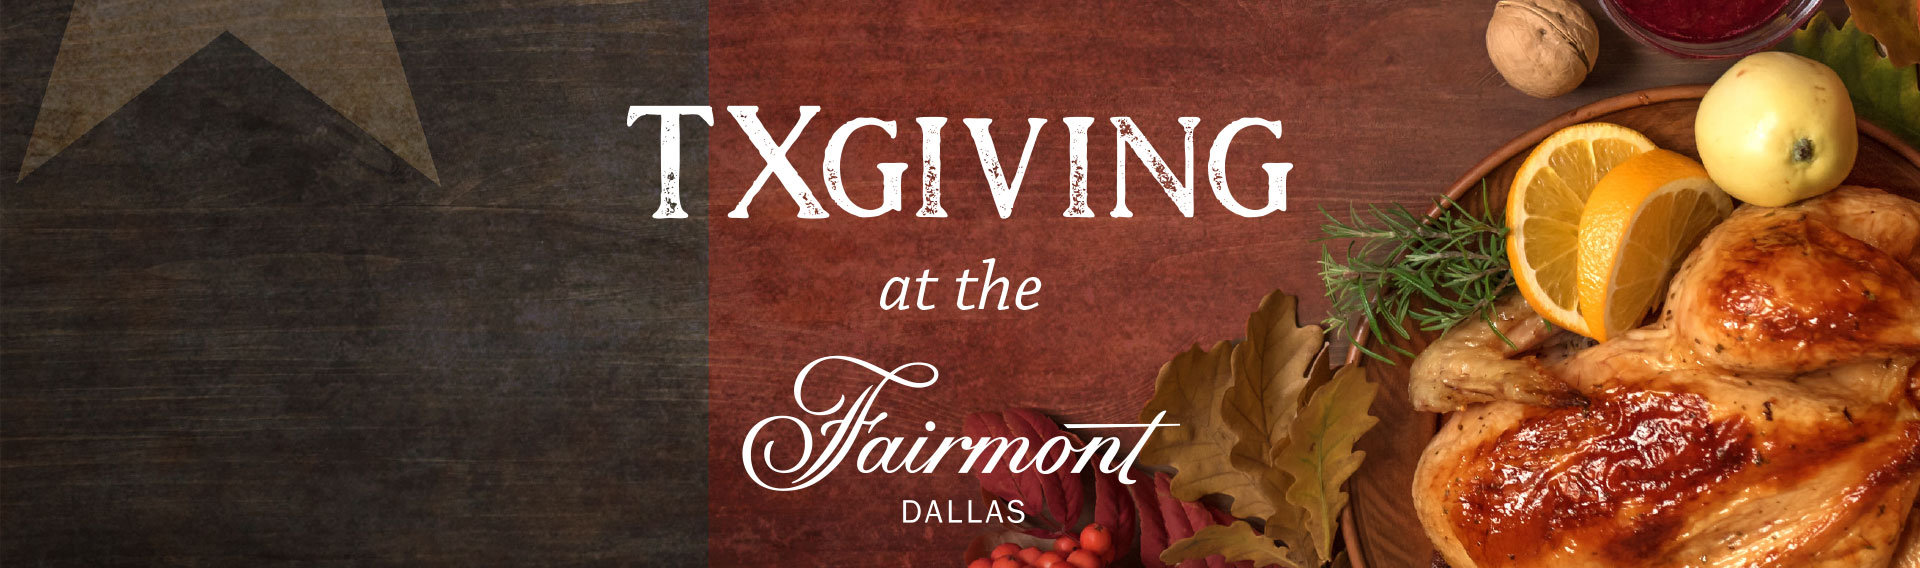 txgiving 2019 header takeout